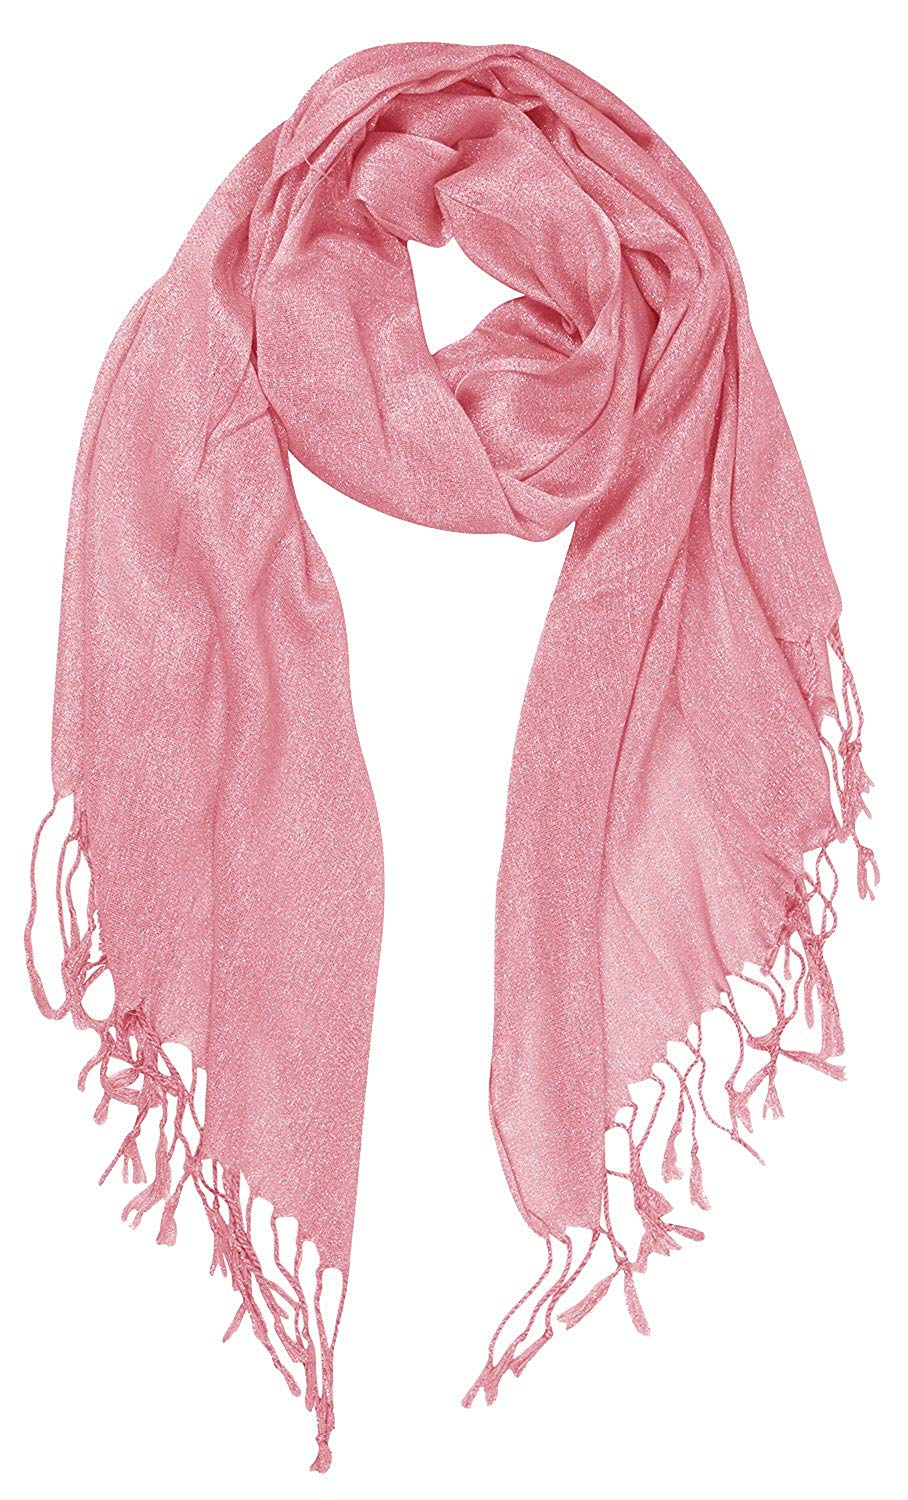 b98a59f0ea0 Cheap Peach Scarf, find Peach Scarf deals on line at Alibaba.com